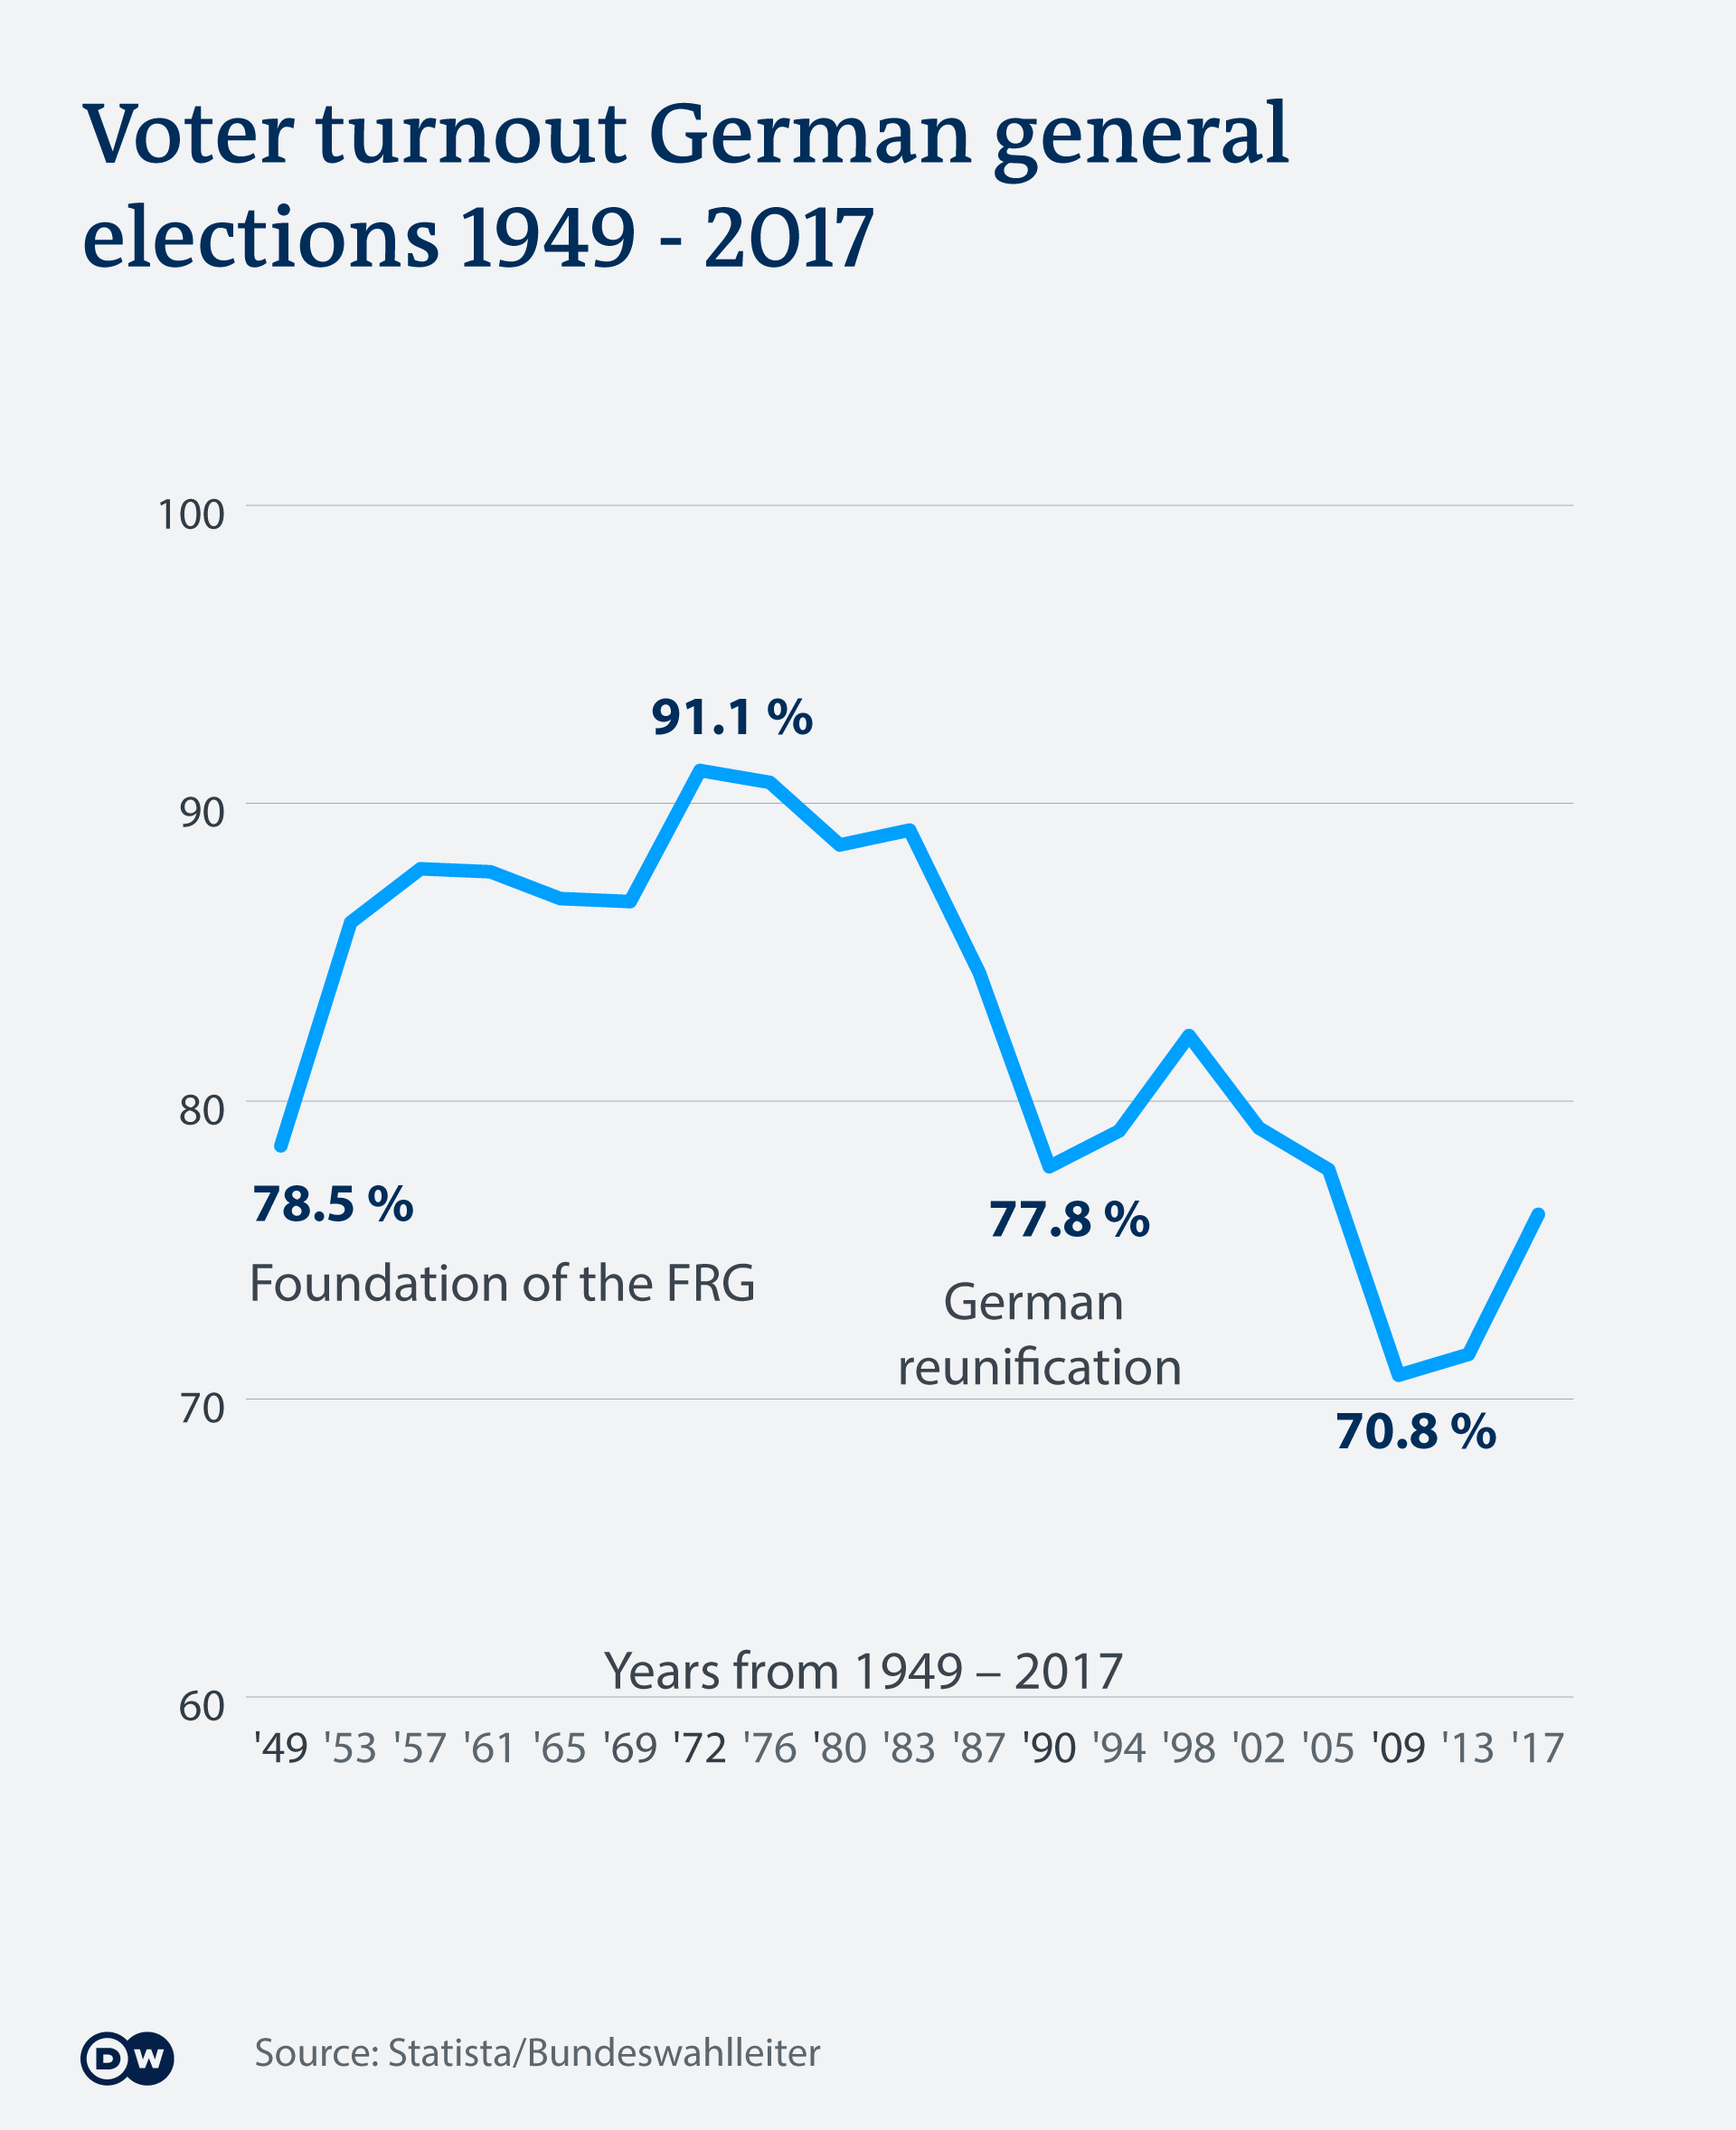 voter turnout Germany 1949-2017